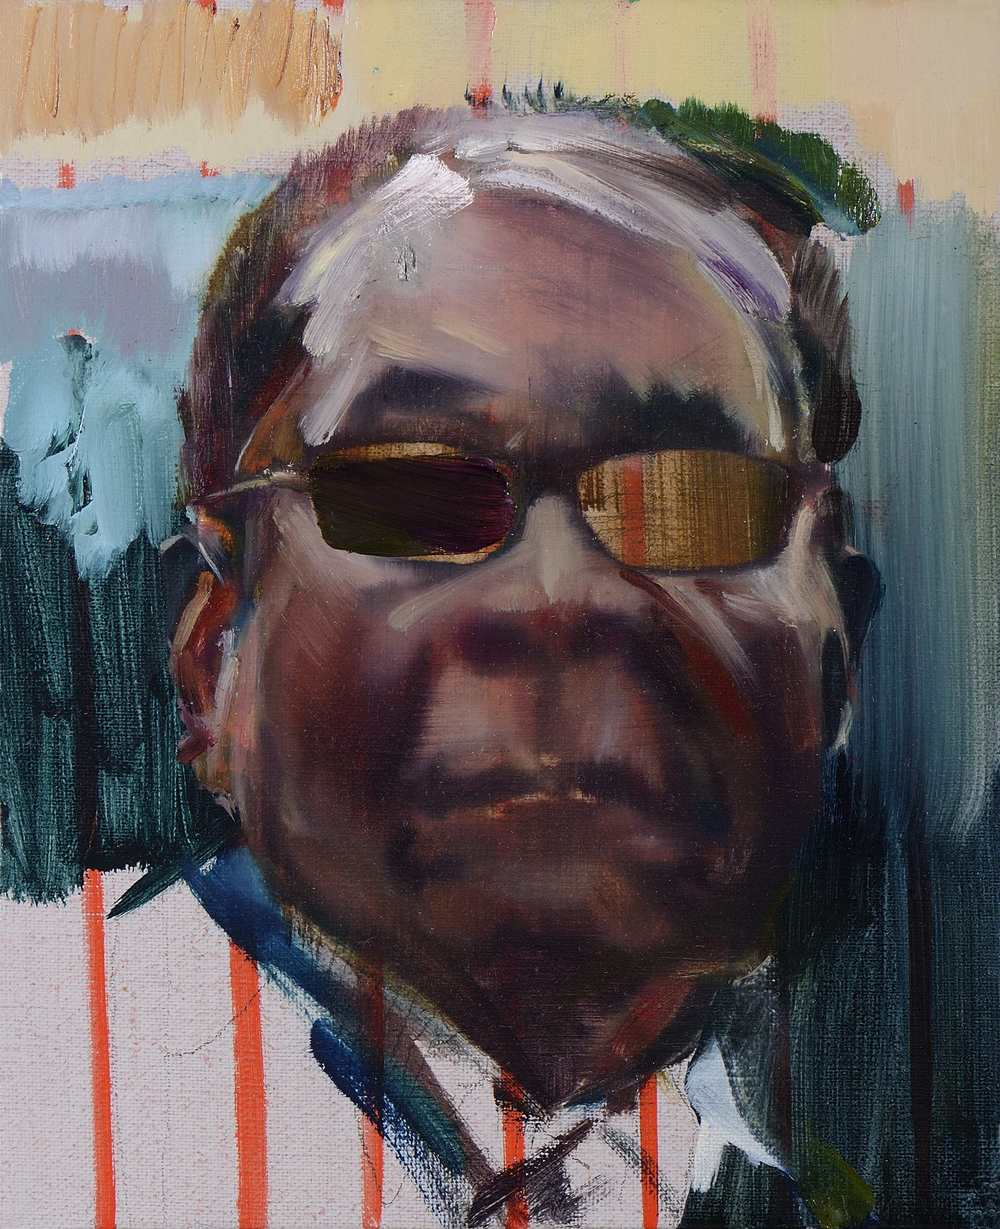 Petit Mugabe 3 , 2012, oil on canvas, 27 x 27cm. Private collection, France